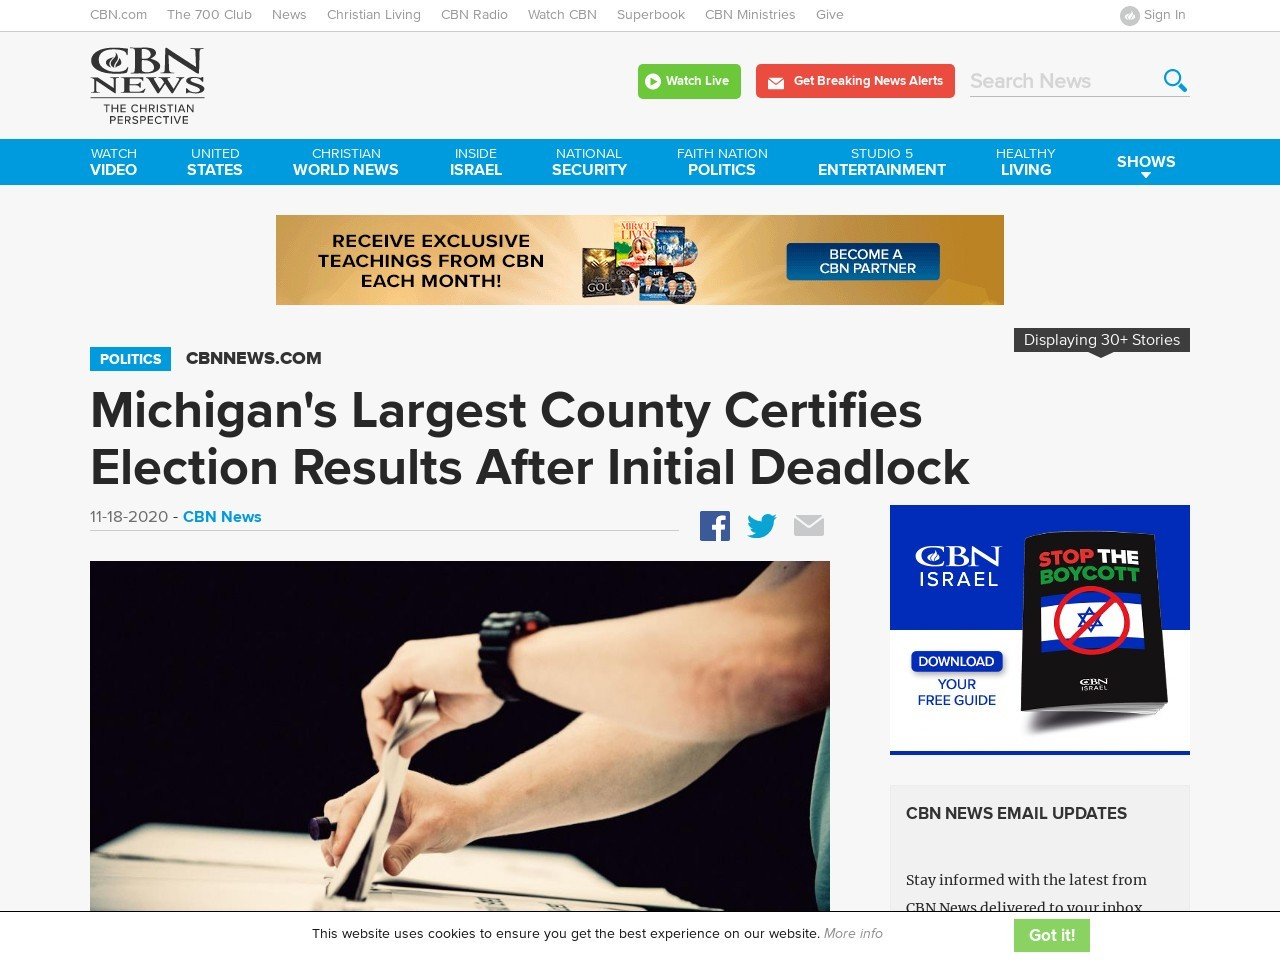 Michigan's Largest County Certifies Election Results After Initial Deadlock